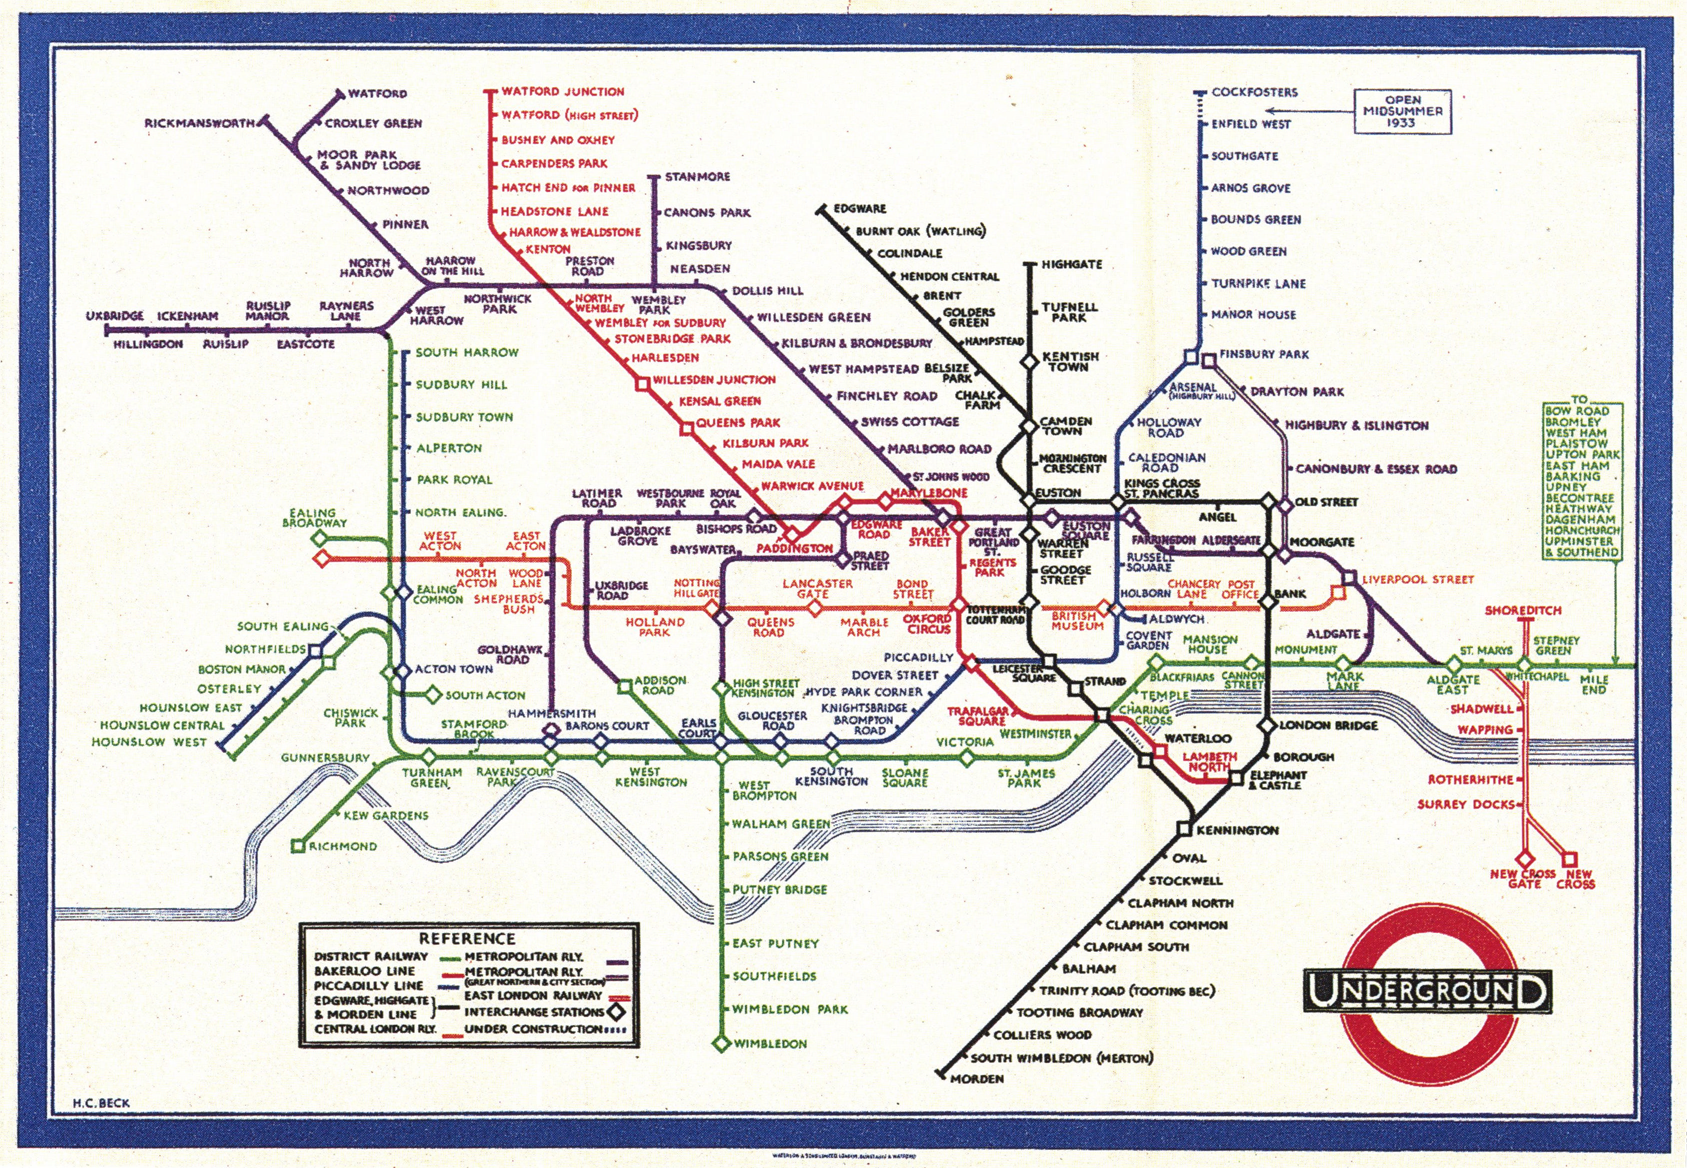 Henry Charles Beck Material Culture And The London Tube Map Of 1933 2000 King Road Wiring Diagram Fig 2 January Color Lithograph First Edition 90 X 63 In Printed At Waterlow Sons Ltd Dunstable